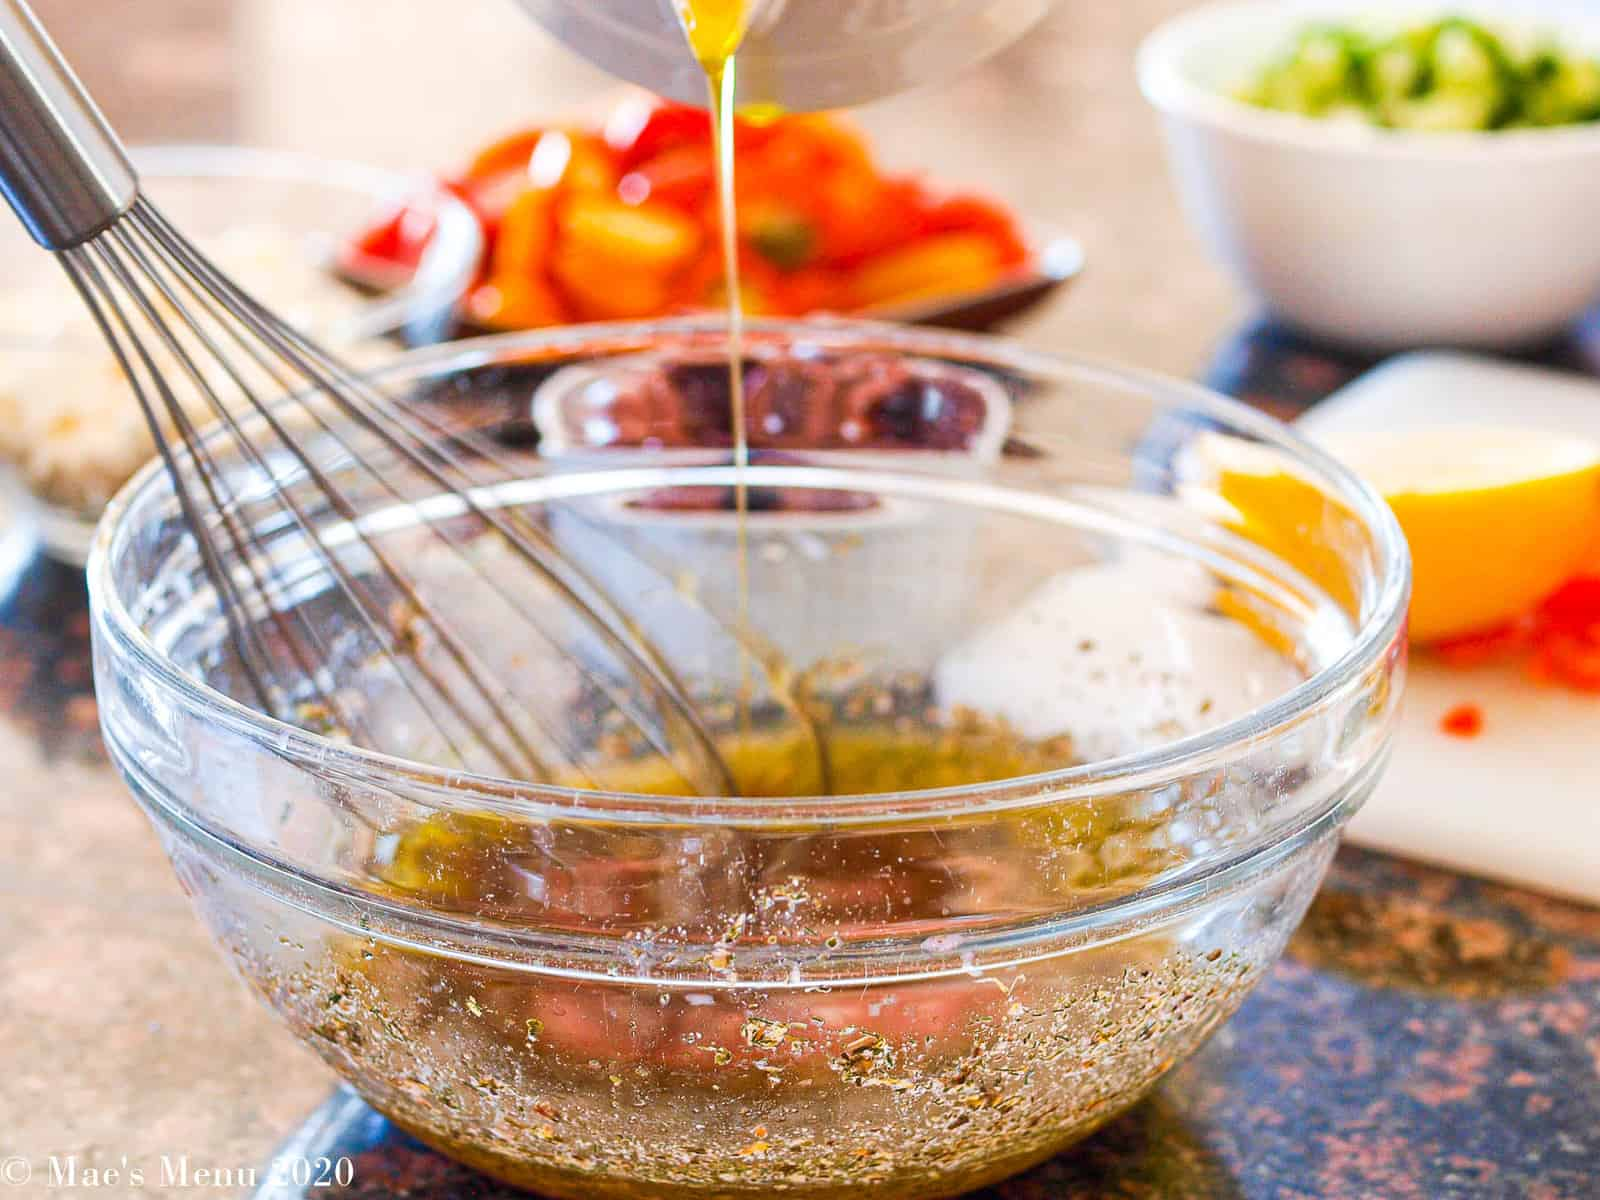 A clear mixing bowl with a whisk and salad dressing in it. Olive oil is being poured in the bowl from above